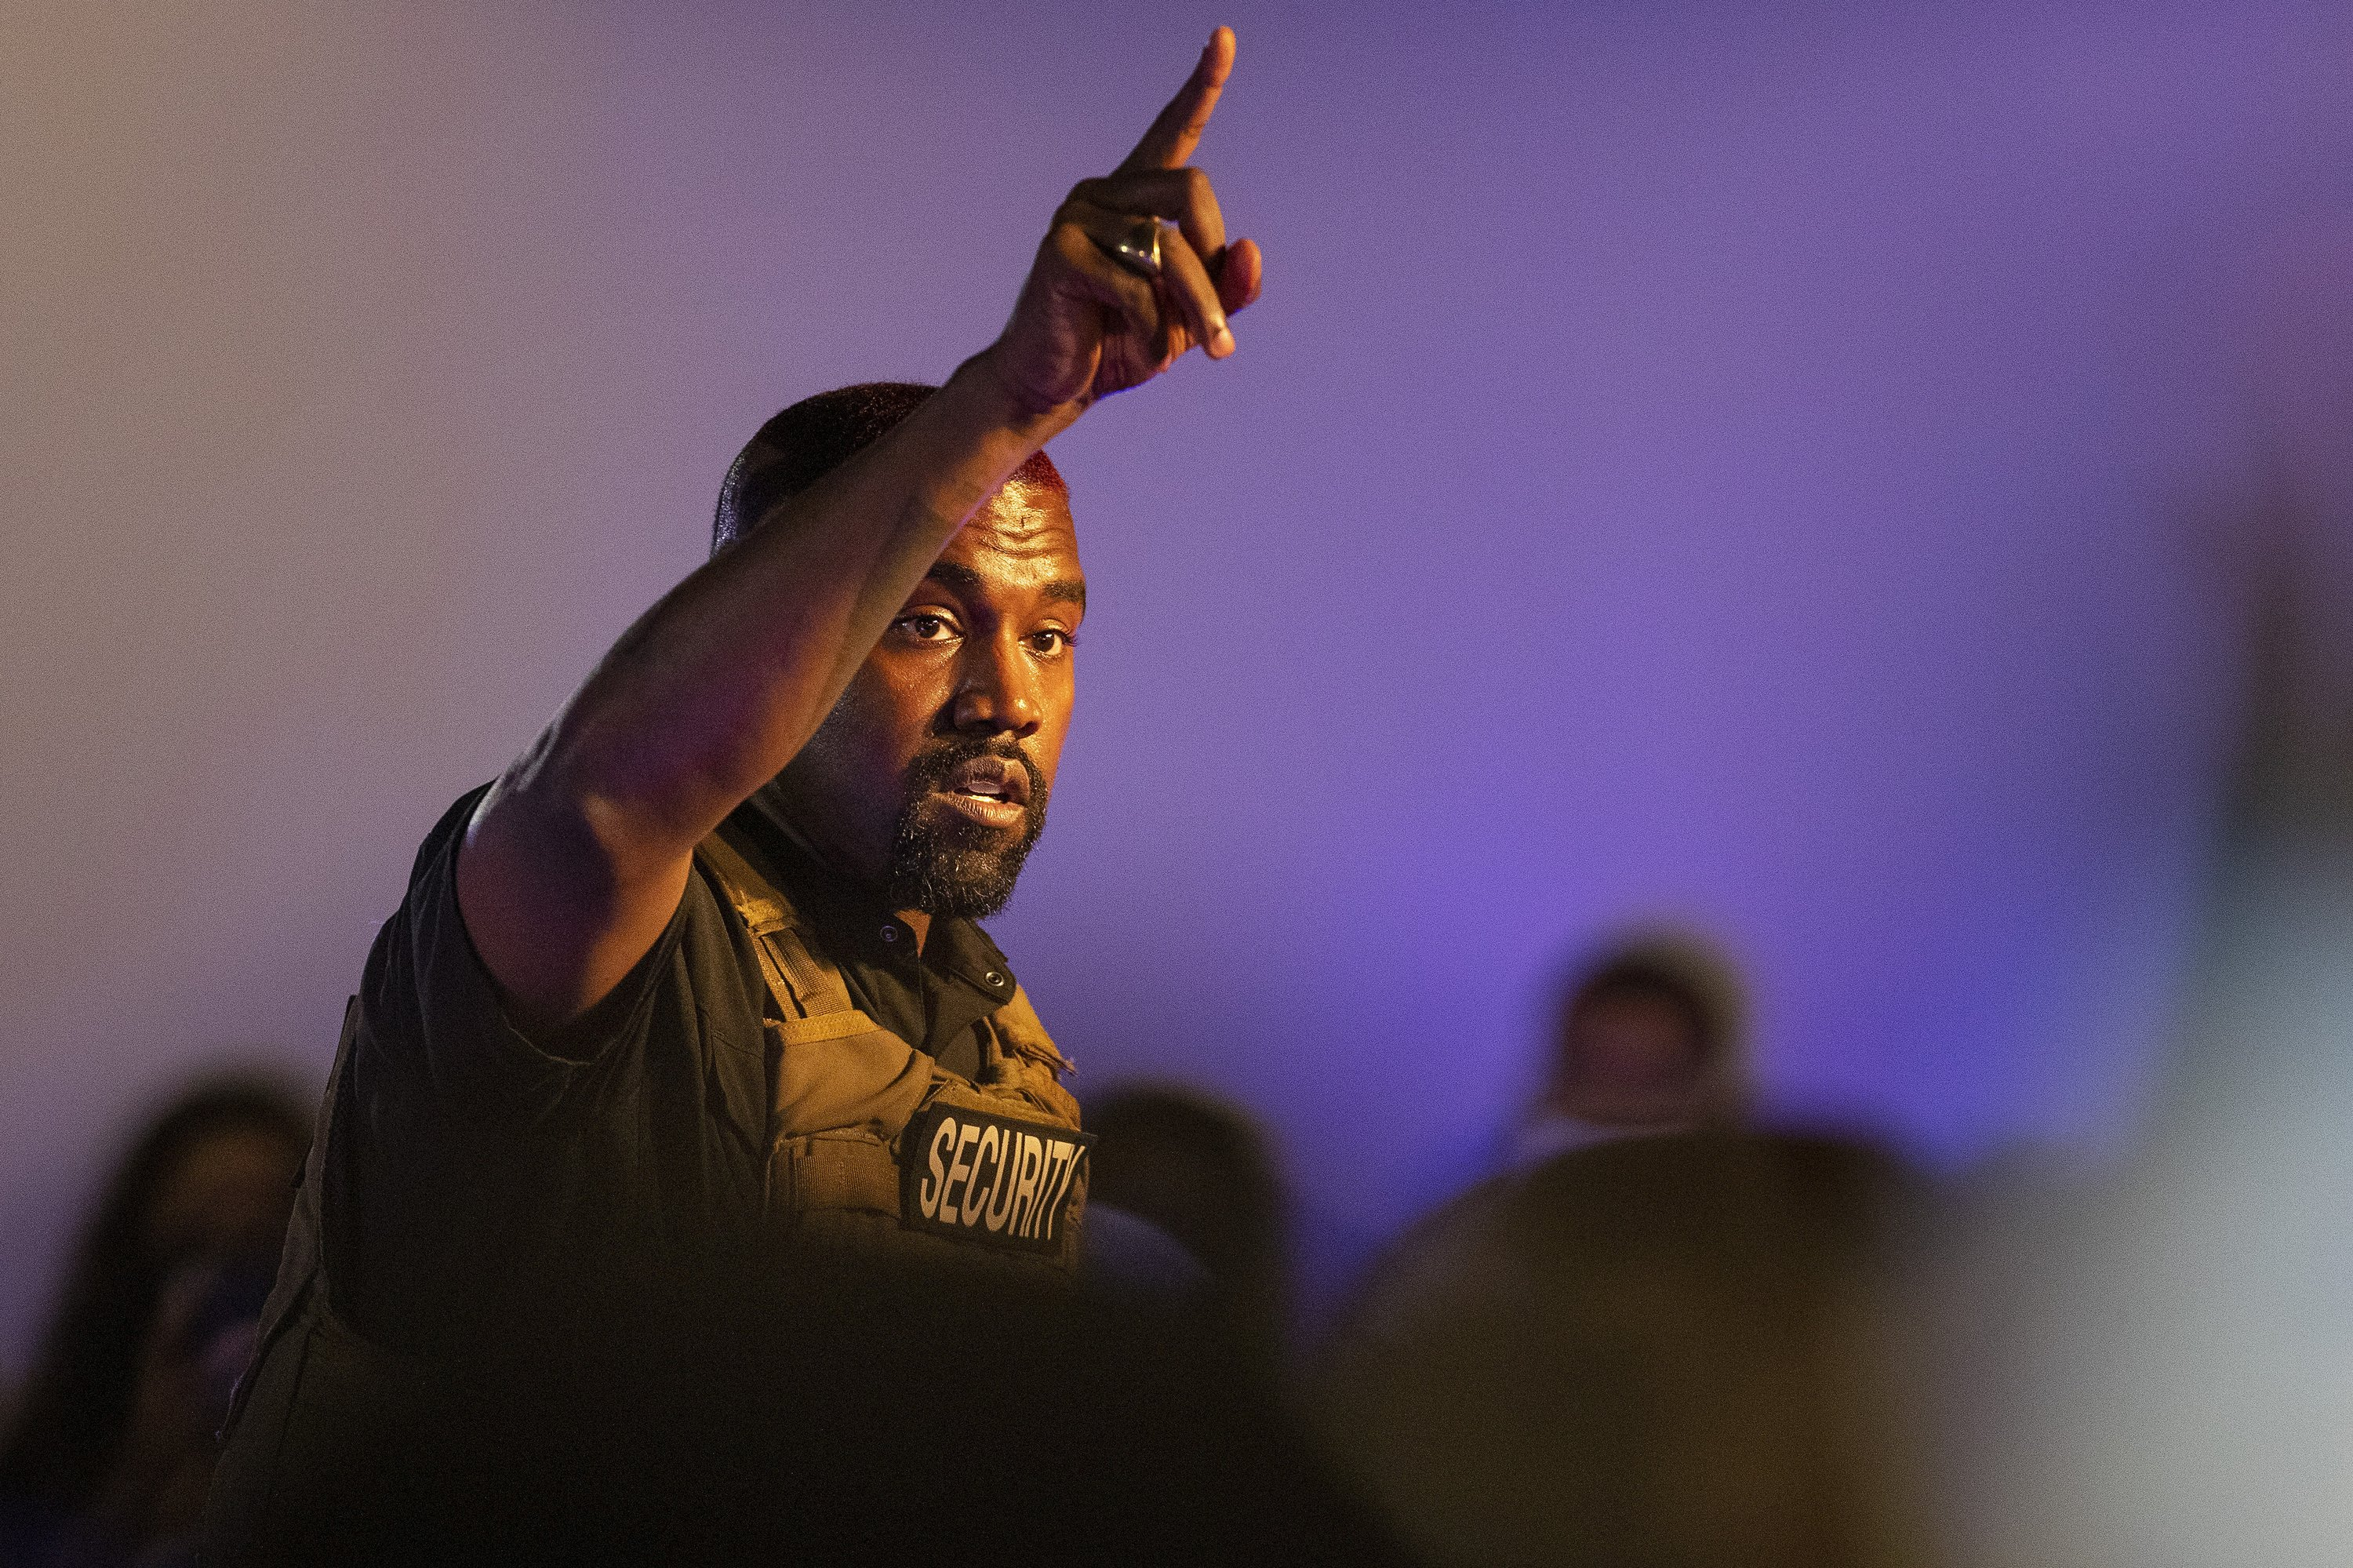 Rapper Kanye West files in Wisconsin to run for president